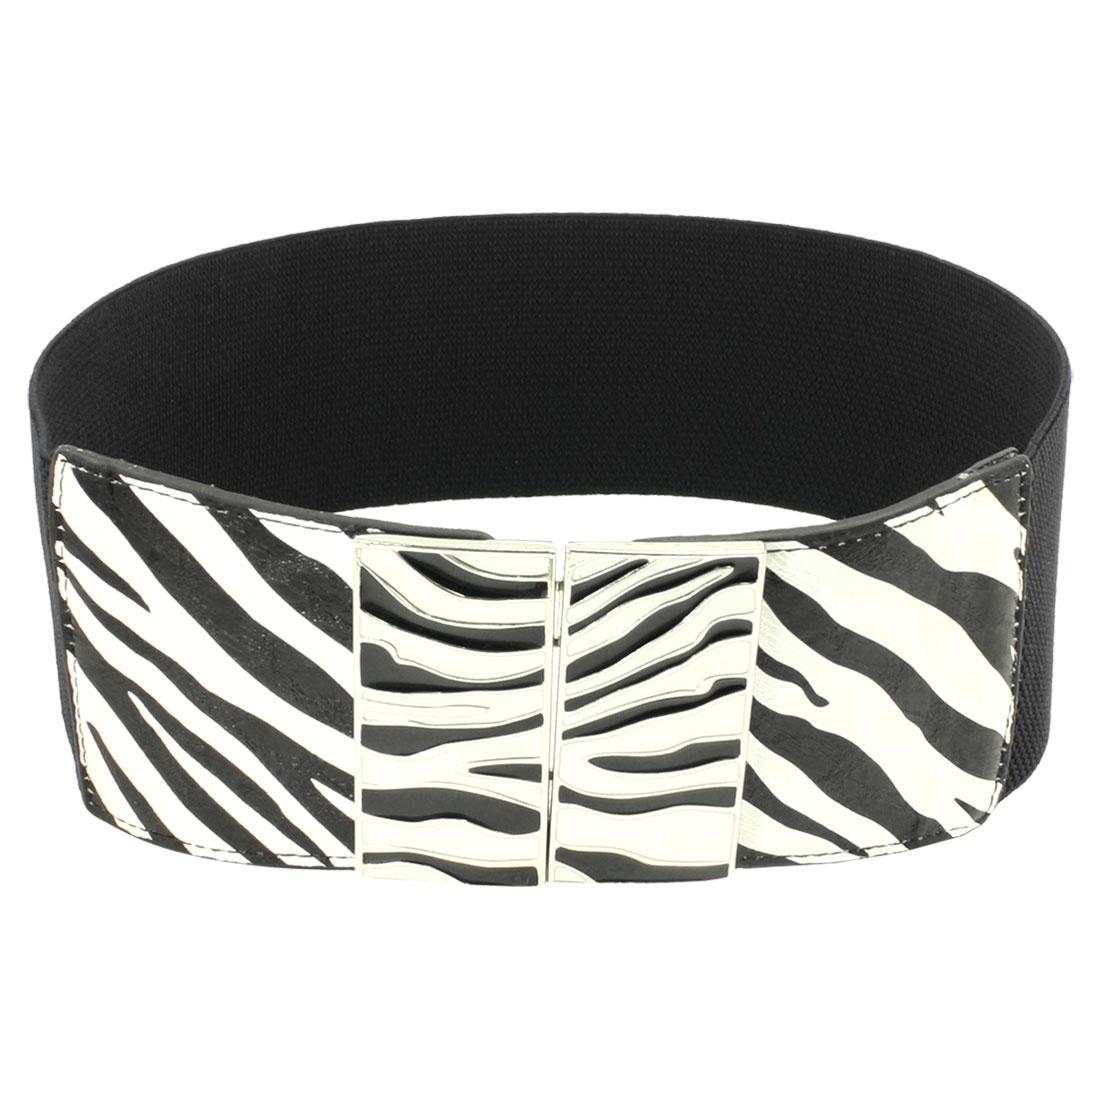 Zebra Print Interlock Buckle Black Textured Stretchy Wide Waist Belt for Woman